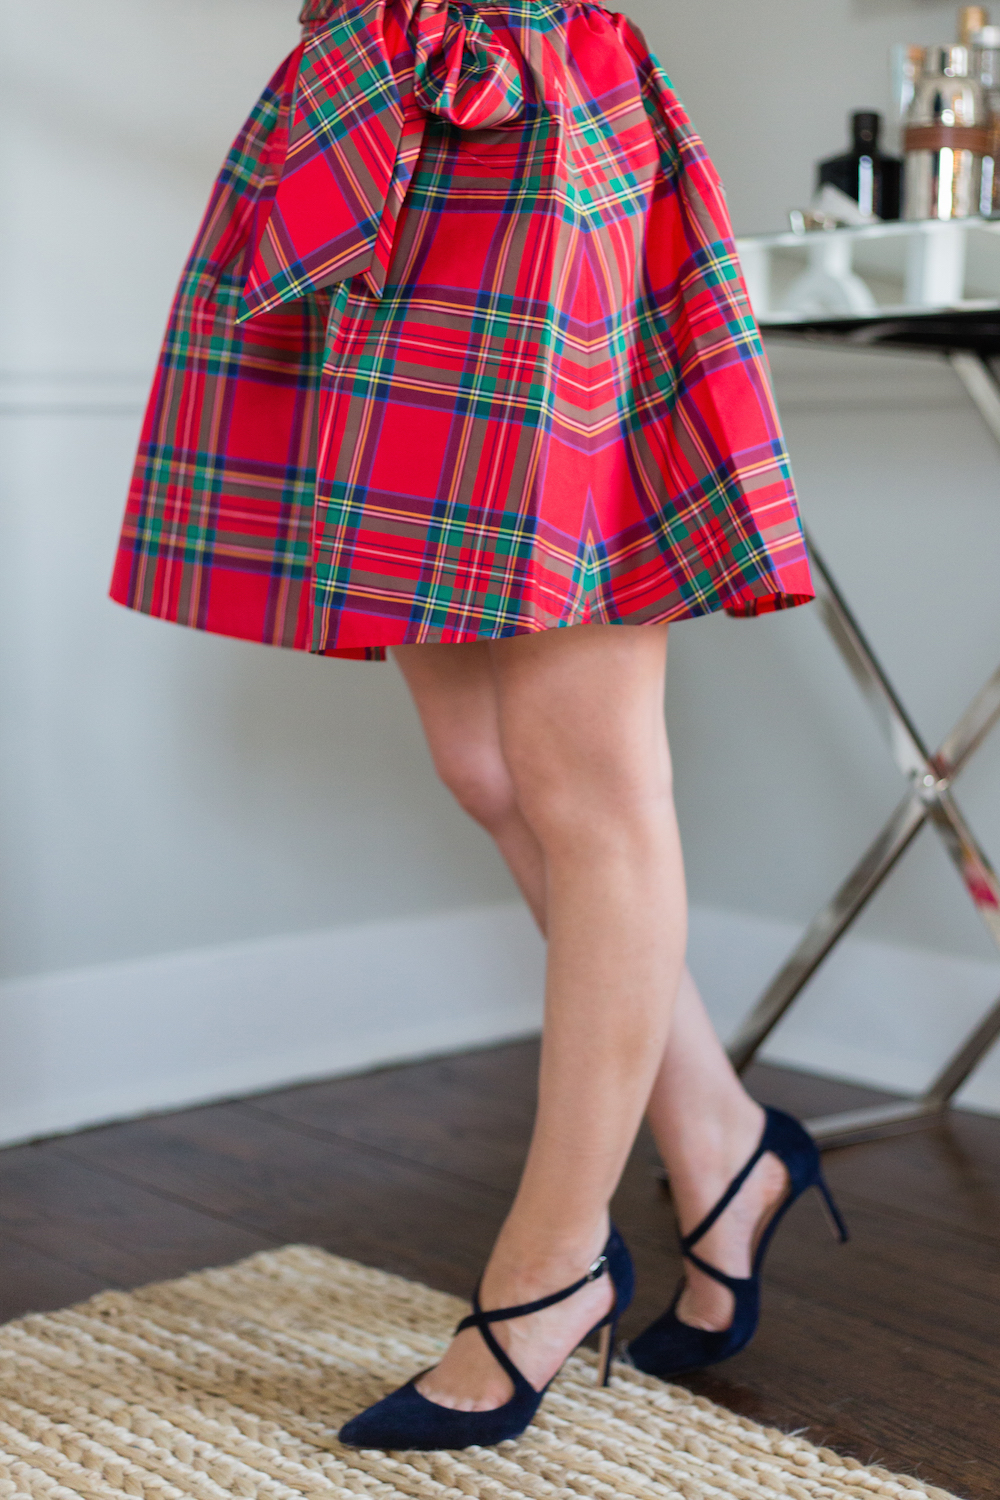 eece42c6d0 vineyard vines jolly plaid taffeta party skirt and manolo blahnik umice  suede crisscross pumps